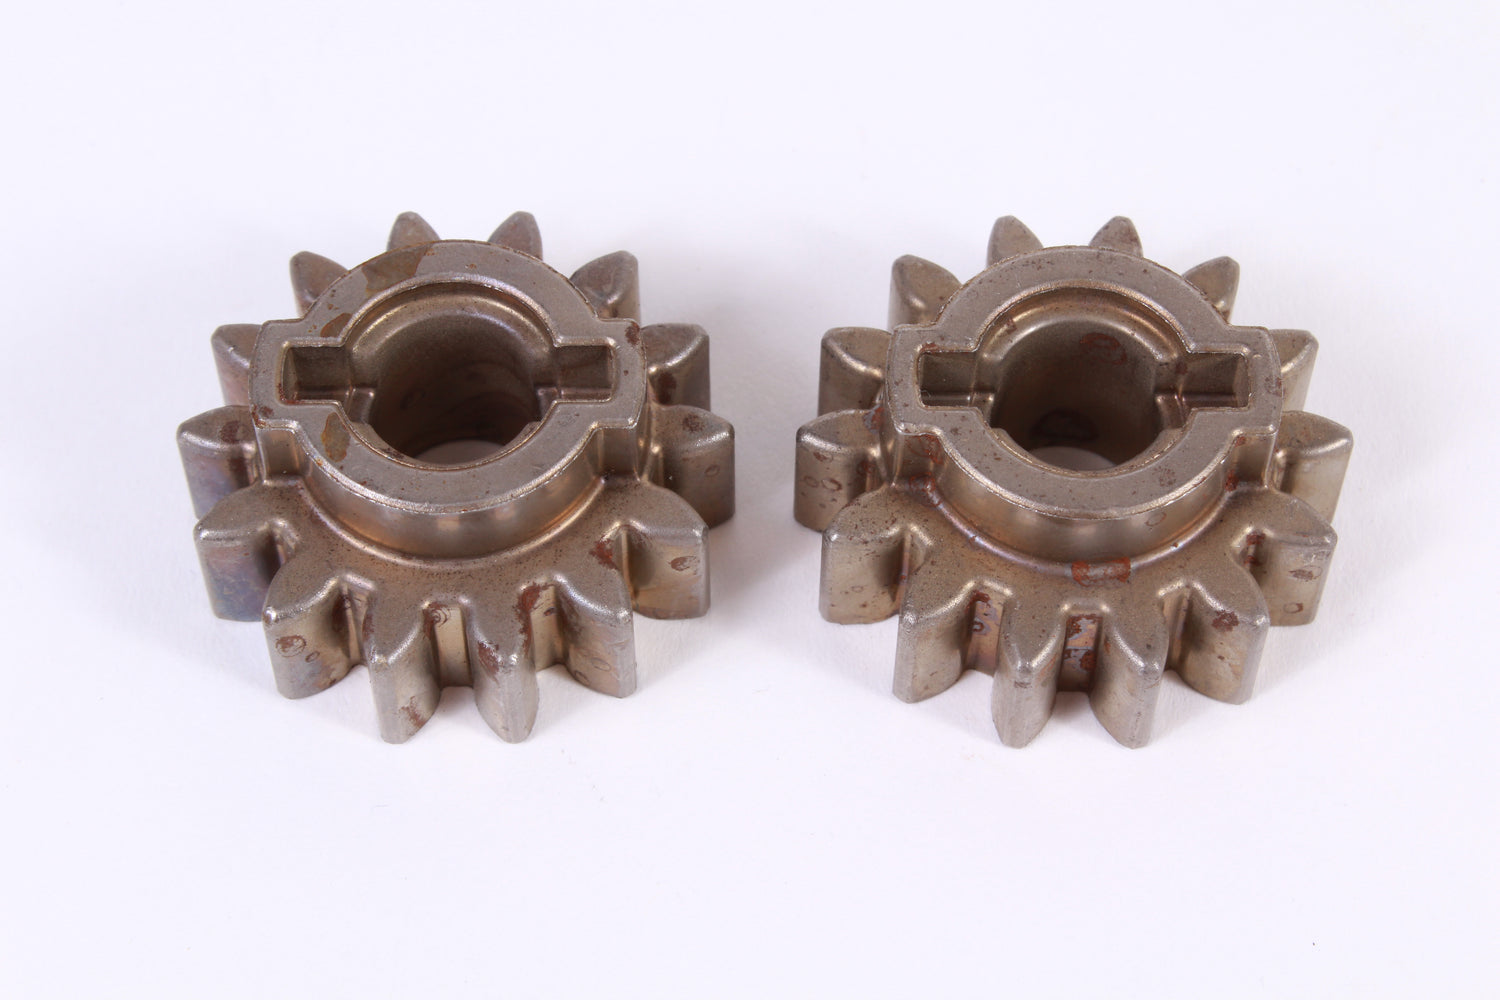 2 Pack Genuine Husqvarna 532403849 14T Pinion Gear Fits AYP Craftsman Poulan